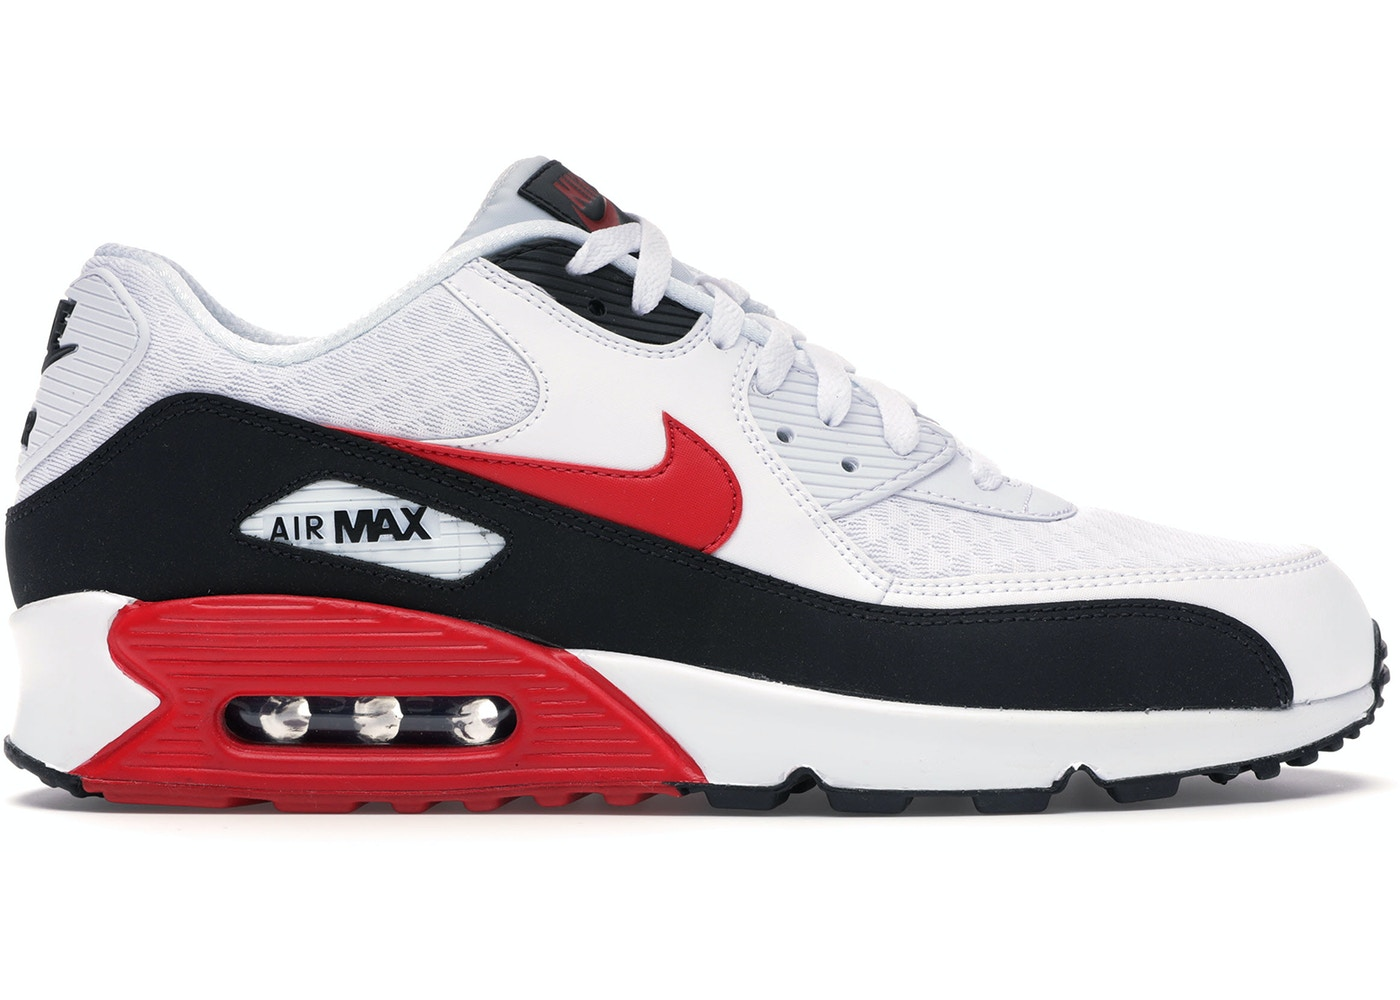 Nike Air Max 90 White University Red Black Bv2522 100